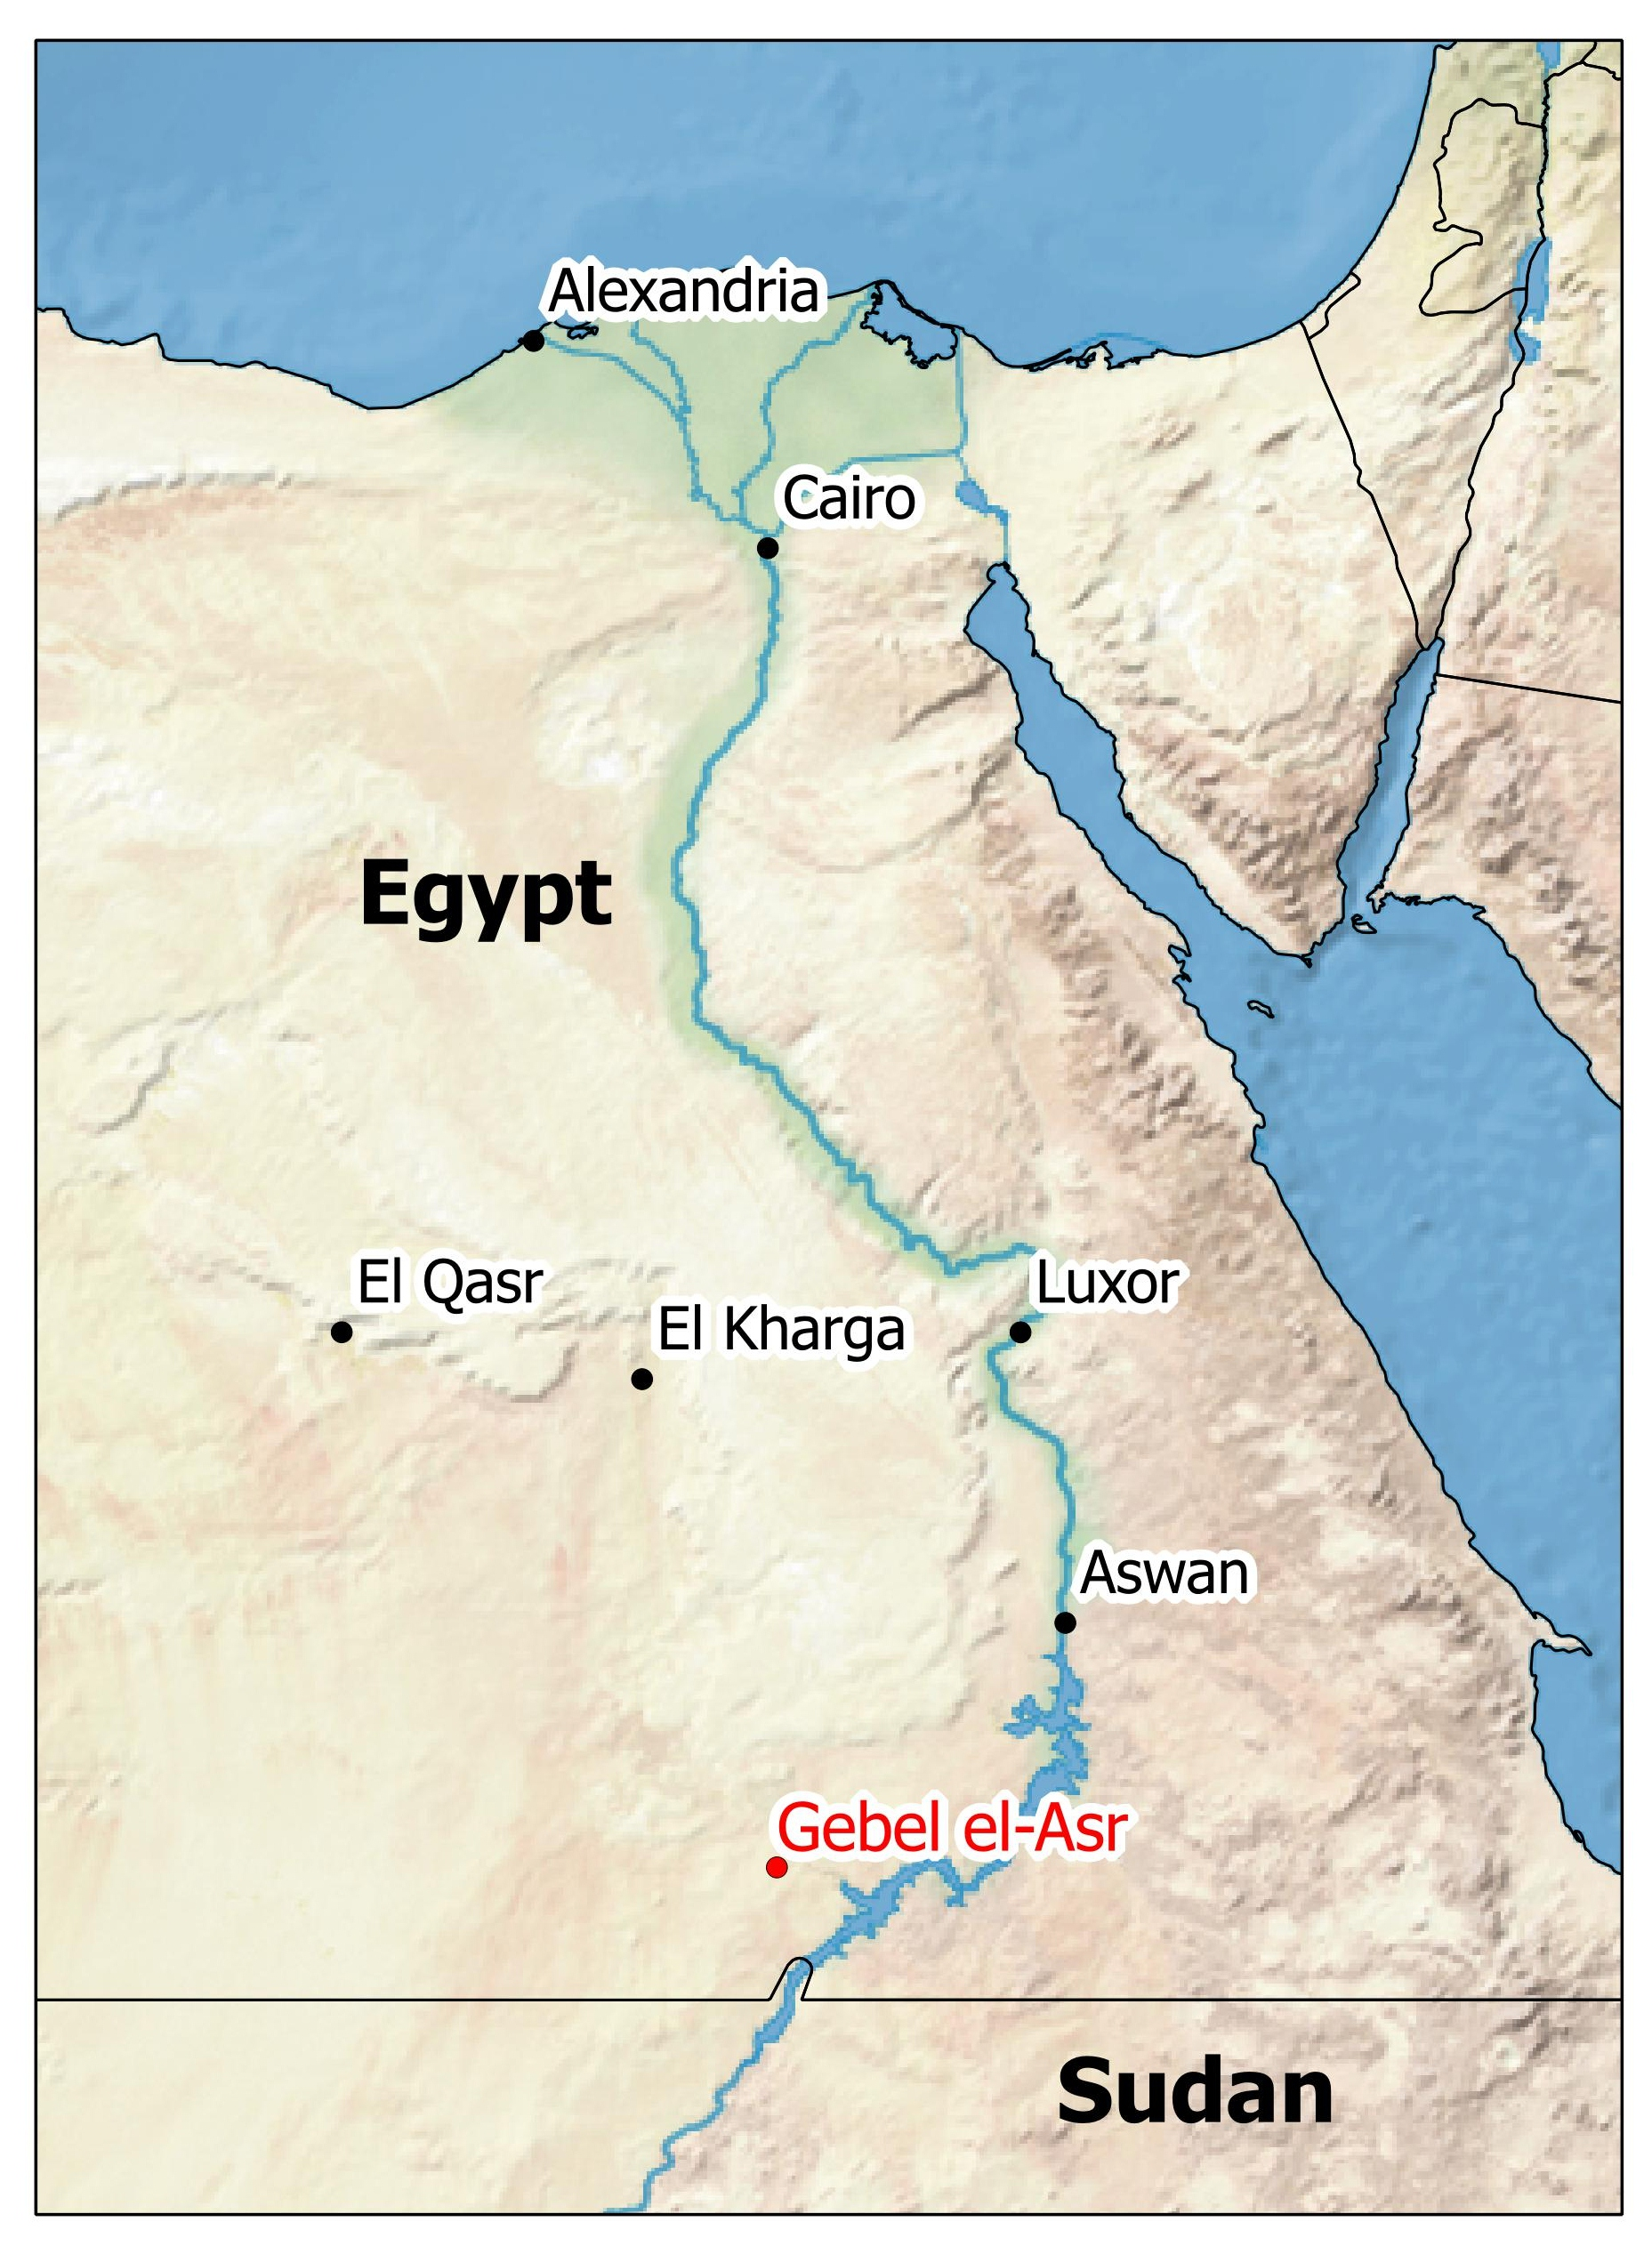 lake nasser africa map Gebel El Asr Quarries Discovery And Excavation Archaeology And lake nasser africa map